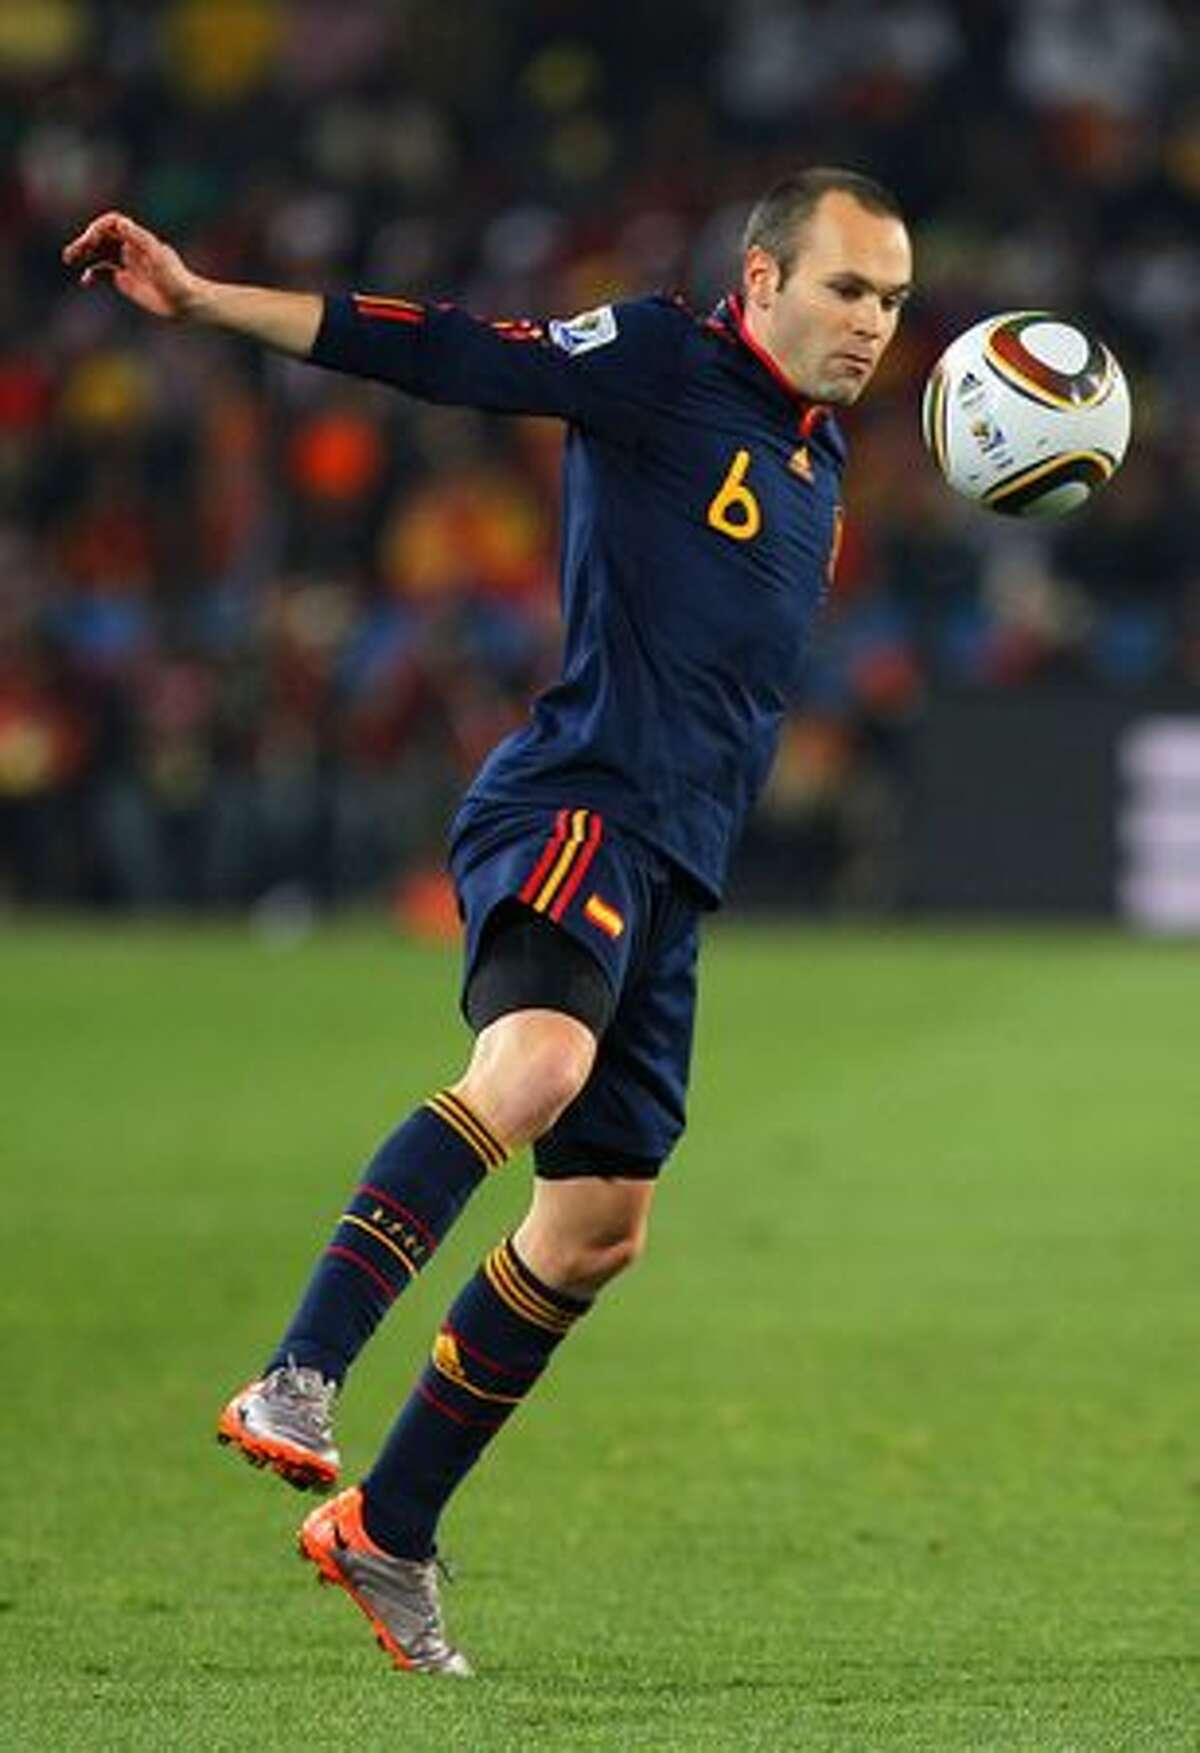 Andres Iniesta of Spain controls the ball during the 2010 FIFA World Cup South Africa Quarter Final match between Paraguay and Spain at Ellis Park Stadium on July 3, 2010 in Johannesburg, South Africa.